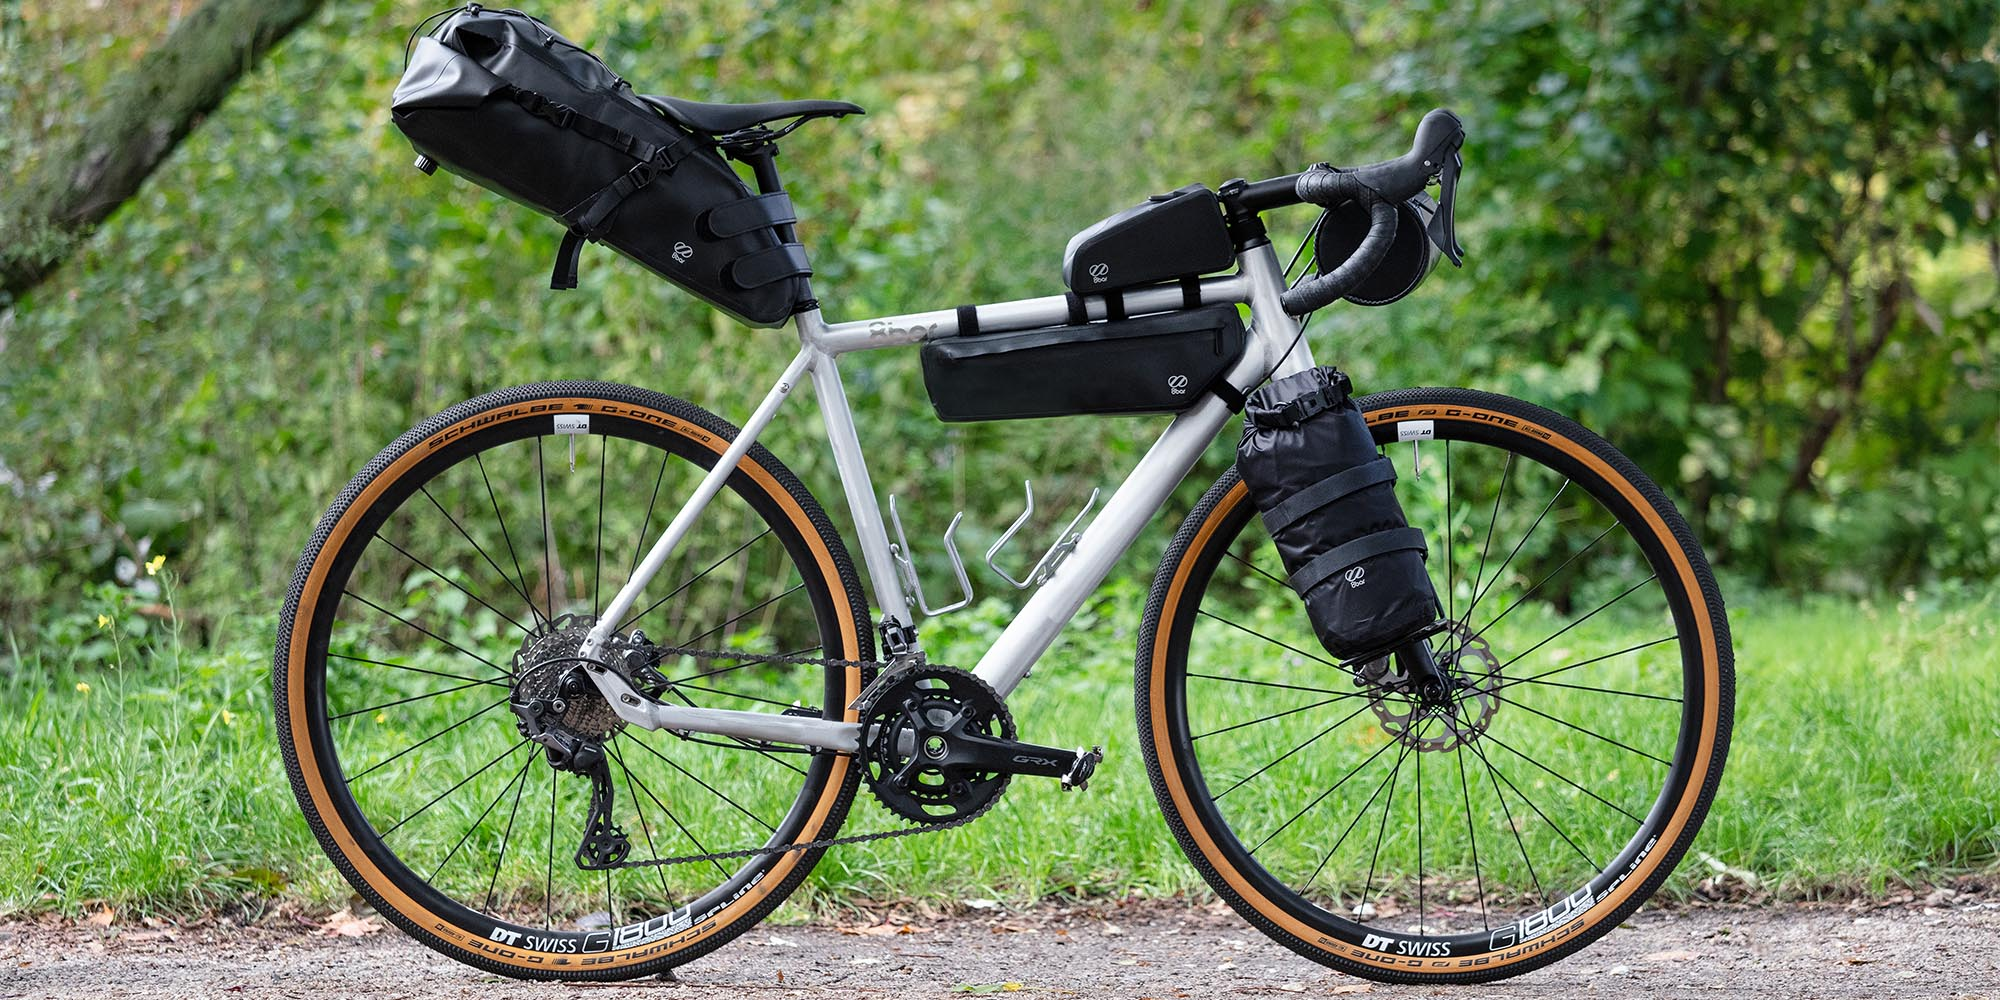 8bar bikepacking bags with 8bar MITTE